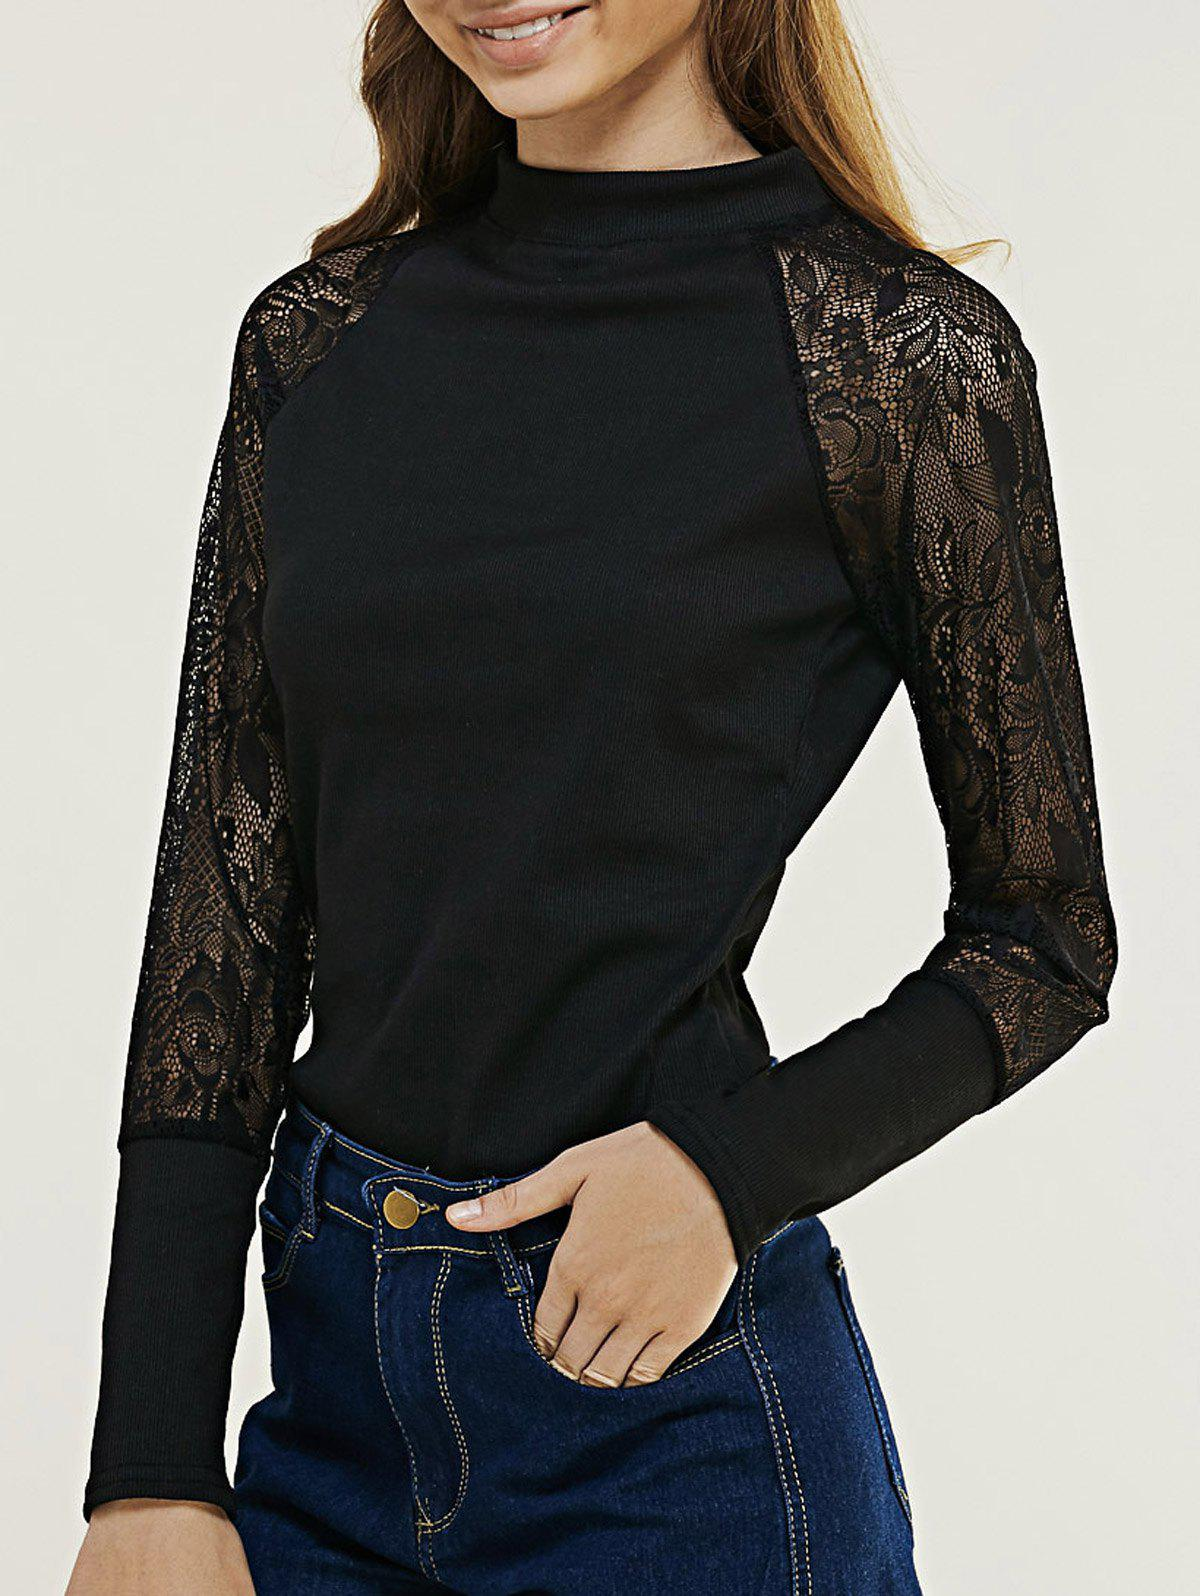 Stylish Raglan Sleeve Lace Top For Women - BLACK ONE SIZE